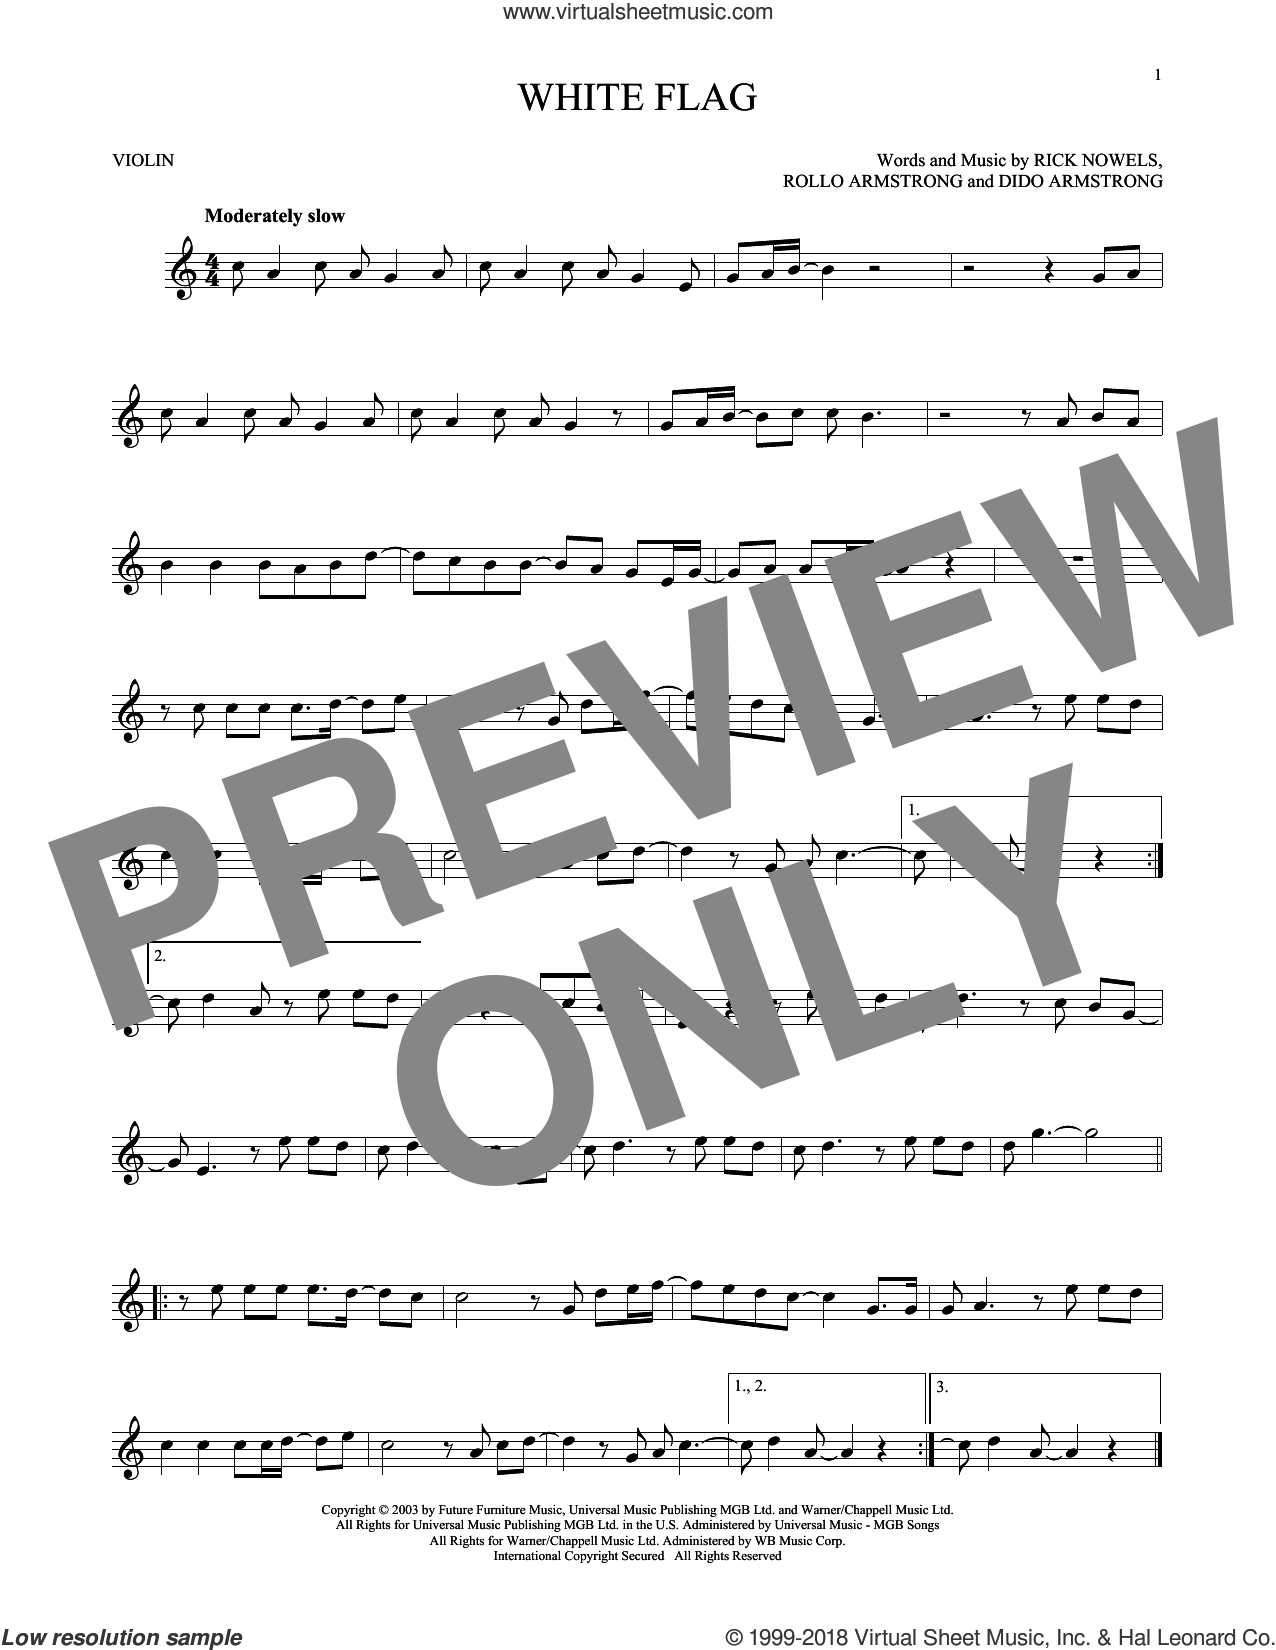 White Flag sheet music for violin solo by Dido Armstrong, Rick Nowels and Rollo Armstrong, intermediate skill level